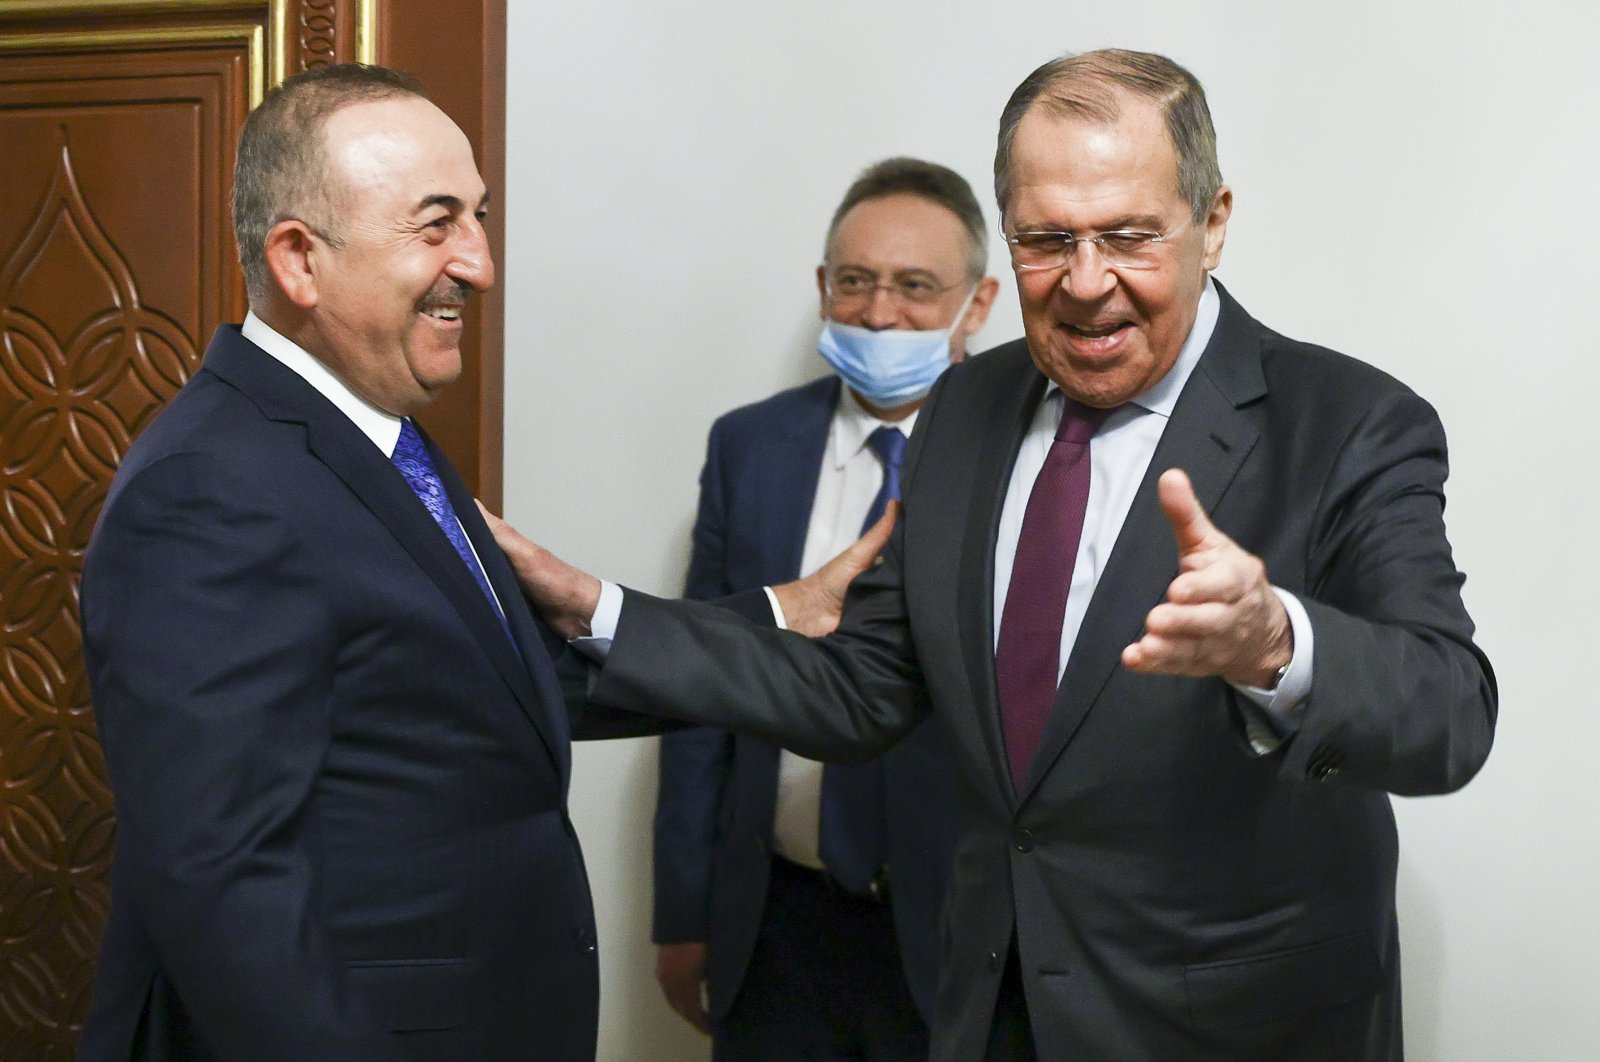 Russian Foreign Minister Sergey Lavrov (R) welcomes Turkish Foreign Minister Mevlut Cavusoglu for the talks at an airport outside Doha, Qatar, March 10, 2021. (Russian Foreign Ministry Press Service via AP)